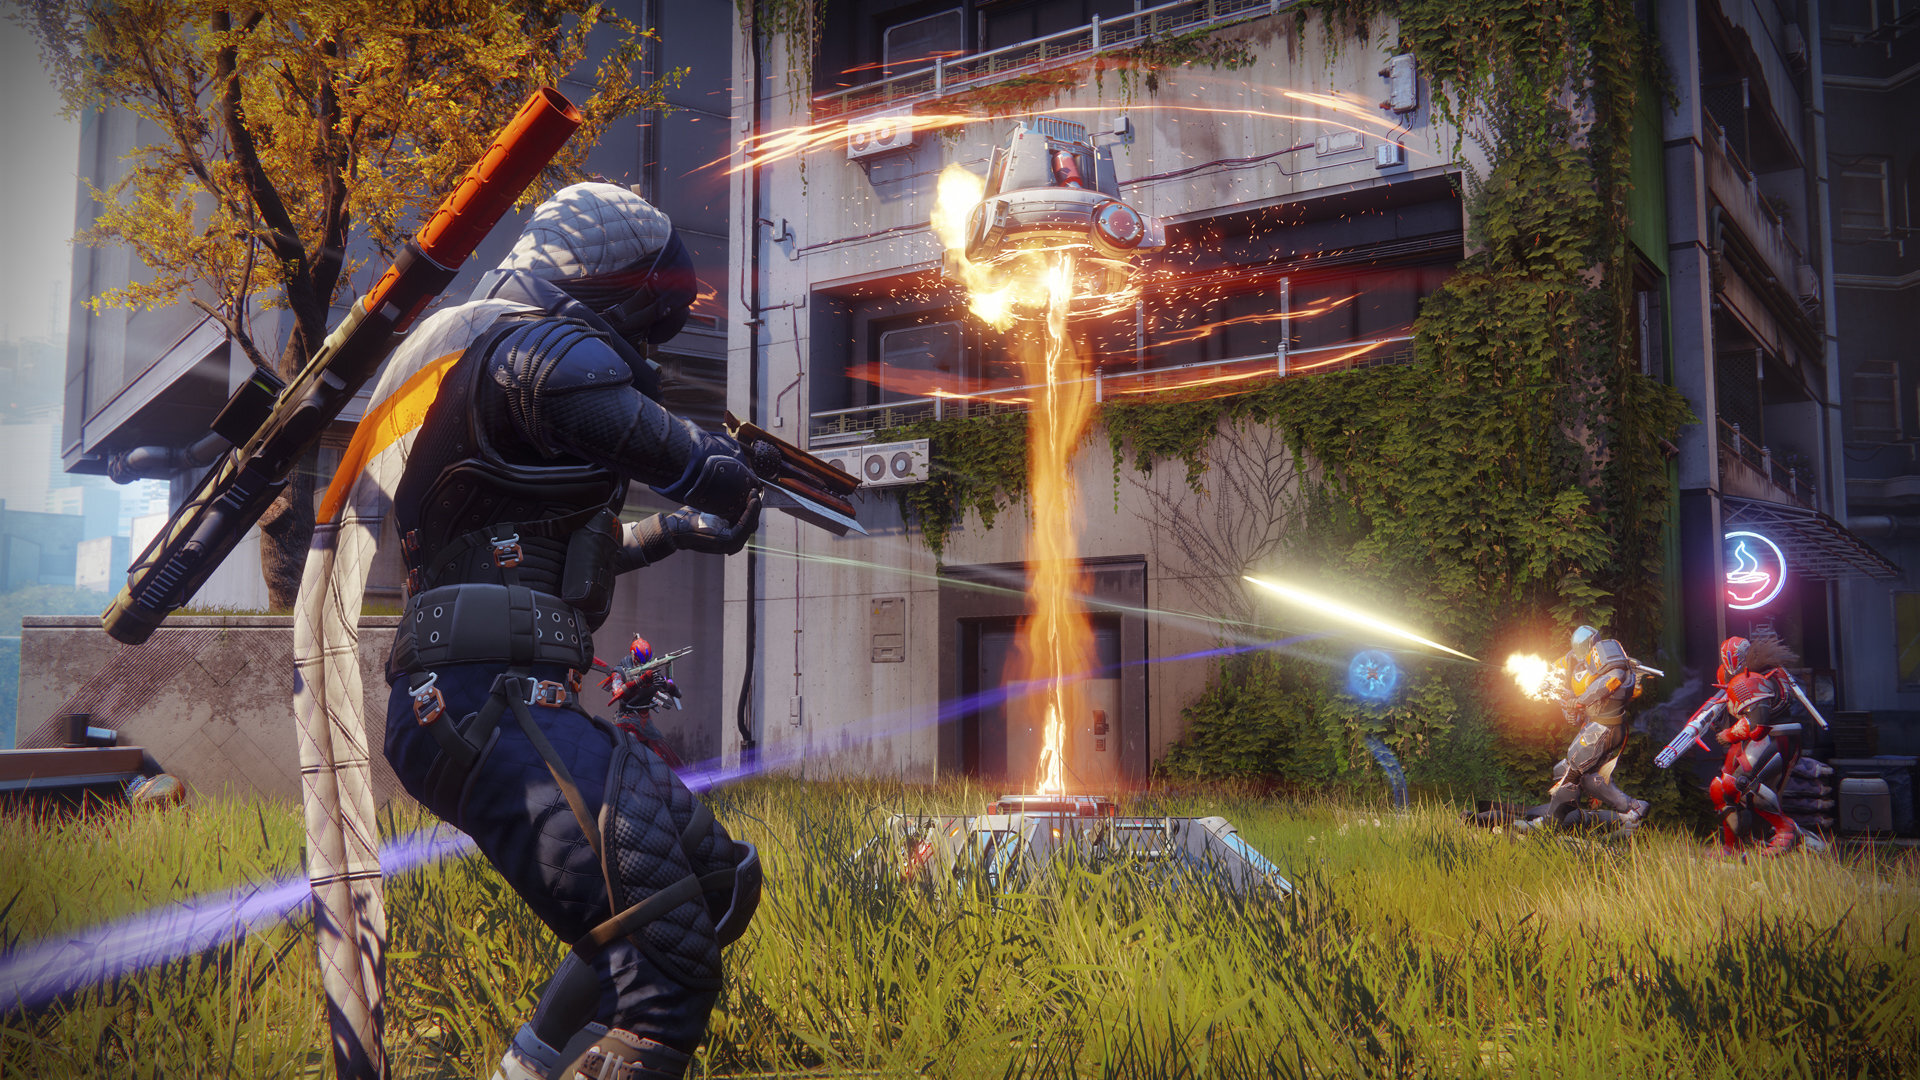 Destiny 2's new transmog system has fans frustrated